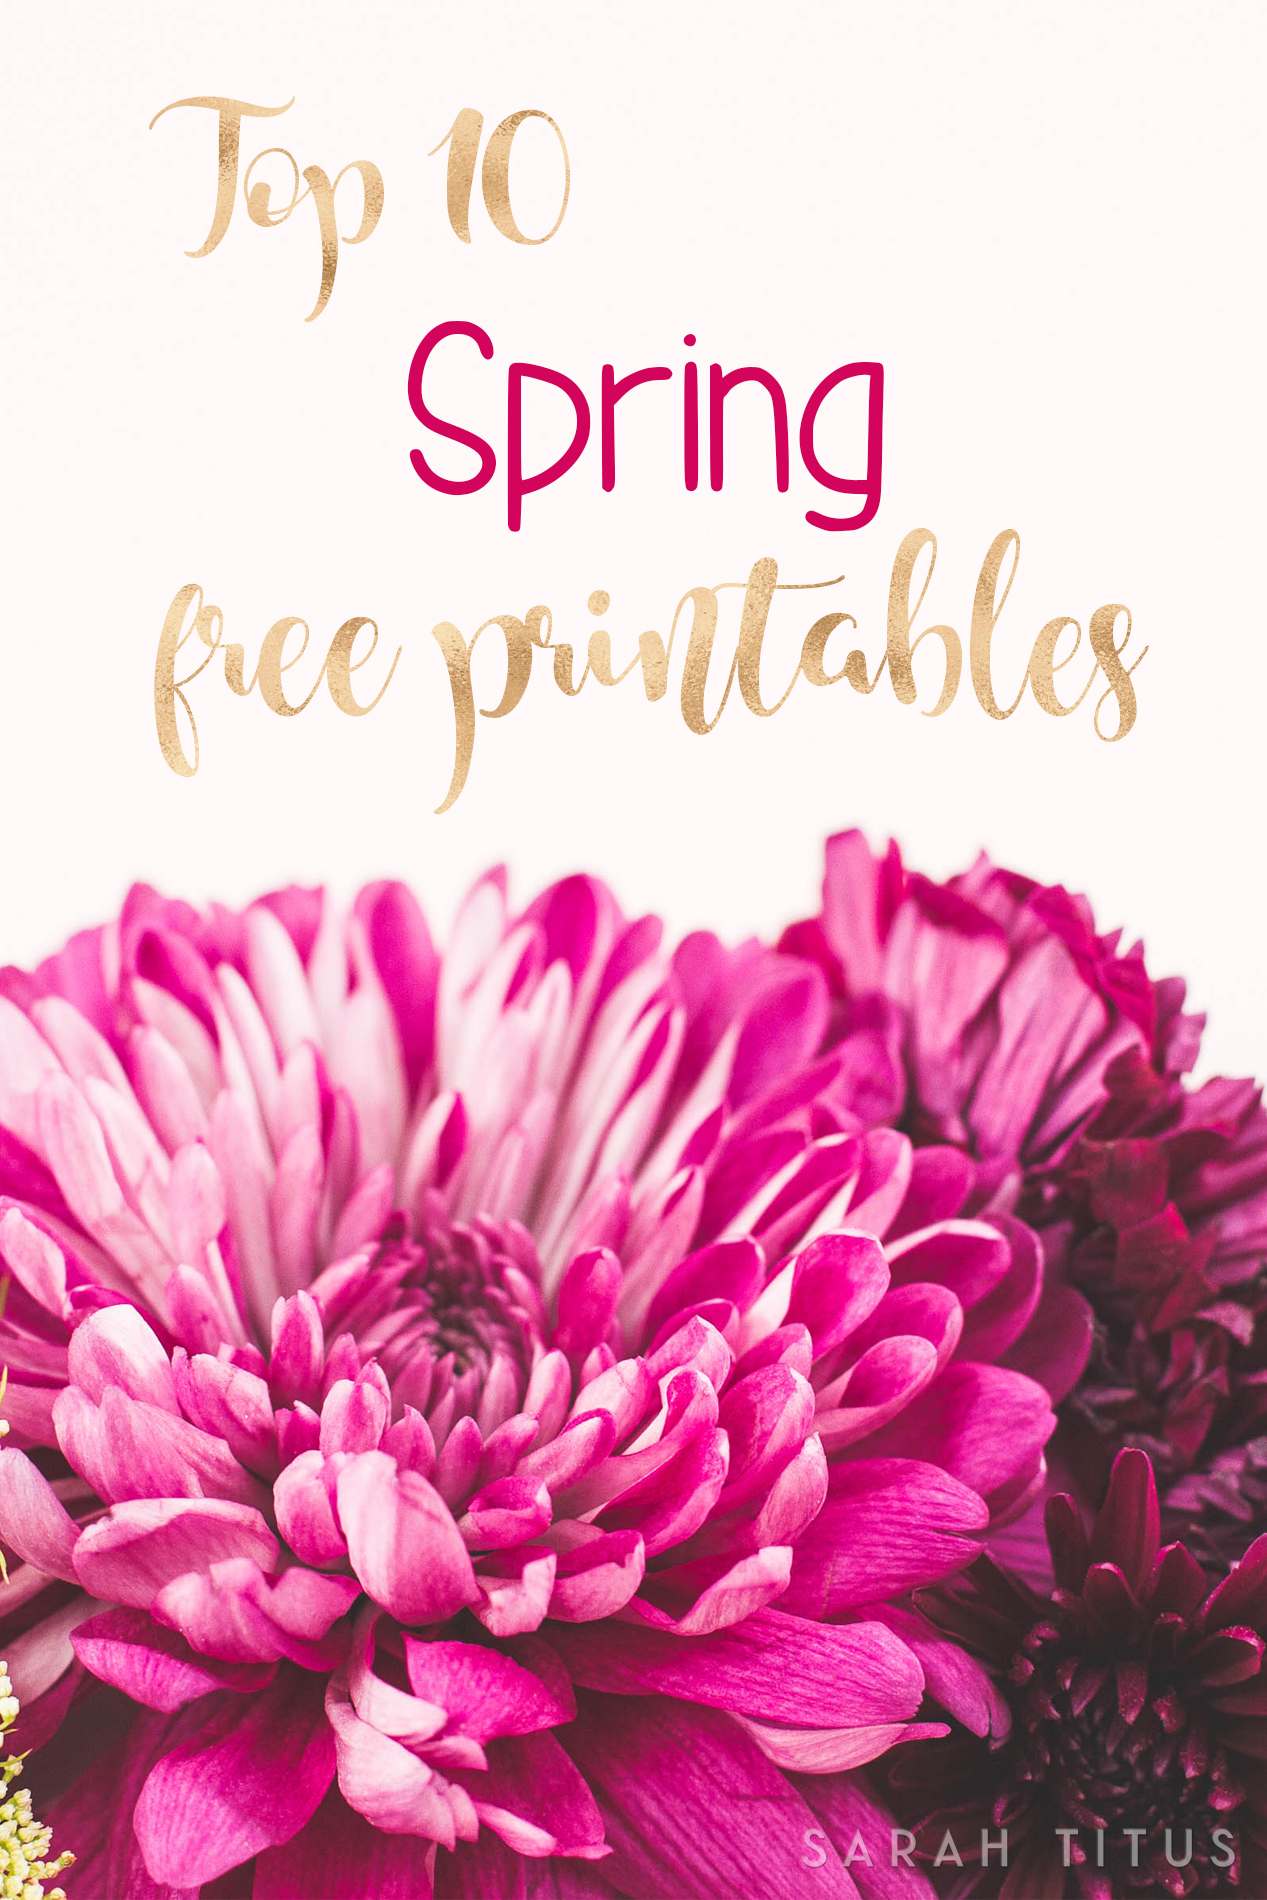 Can you believe winter is over? A new season is coming with tons of life and warmth! You have no idea how much I love warm weather, and to celebrate with you I am bringing you my Top 10 Spring Free Printables. I hope you like them and find them useful!